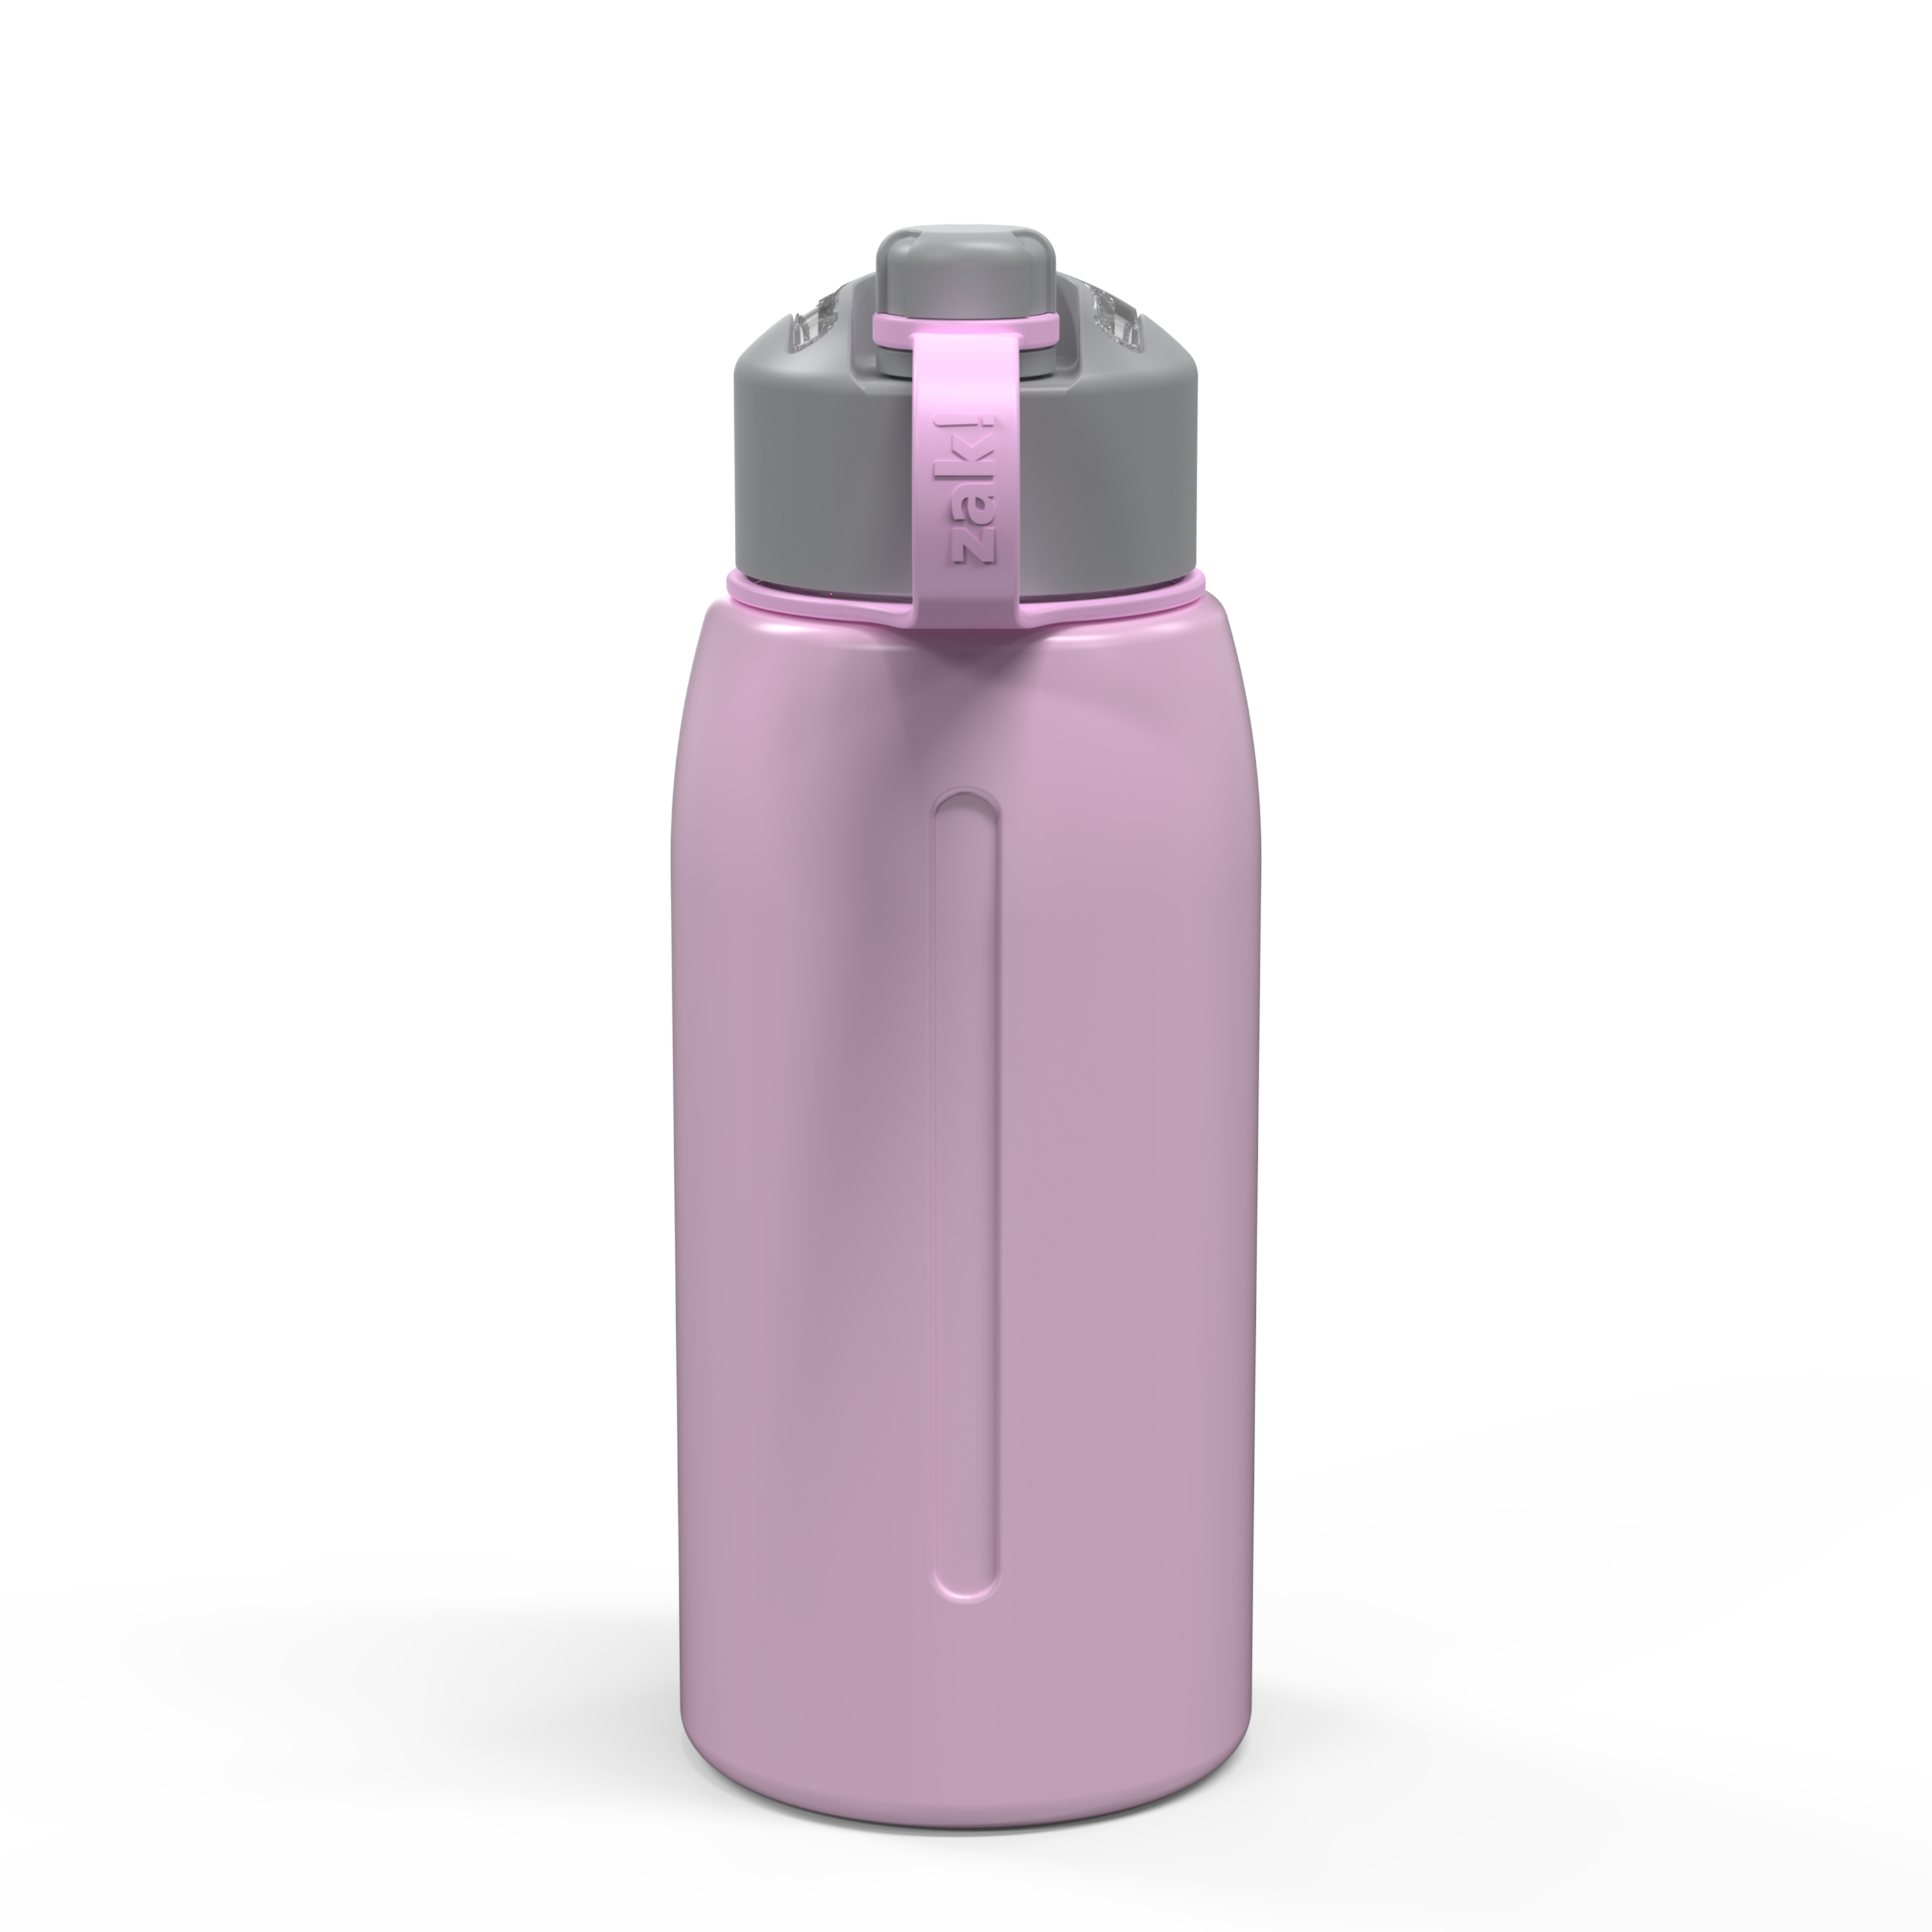 Genesis 32 ounce Vacuum Insulated Stainless Steel Tumbler, Lilac slideshow image 8